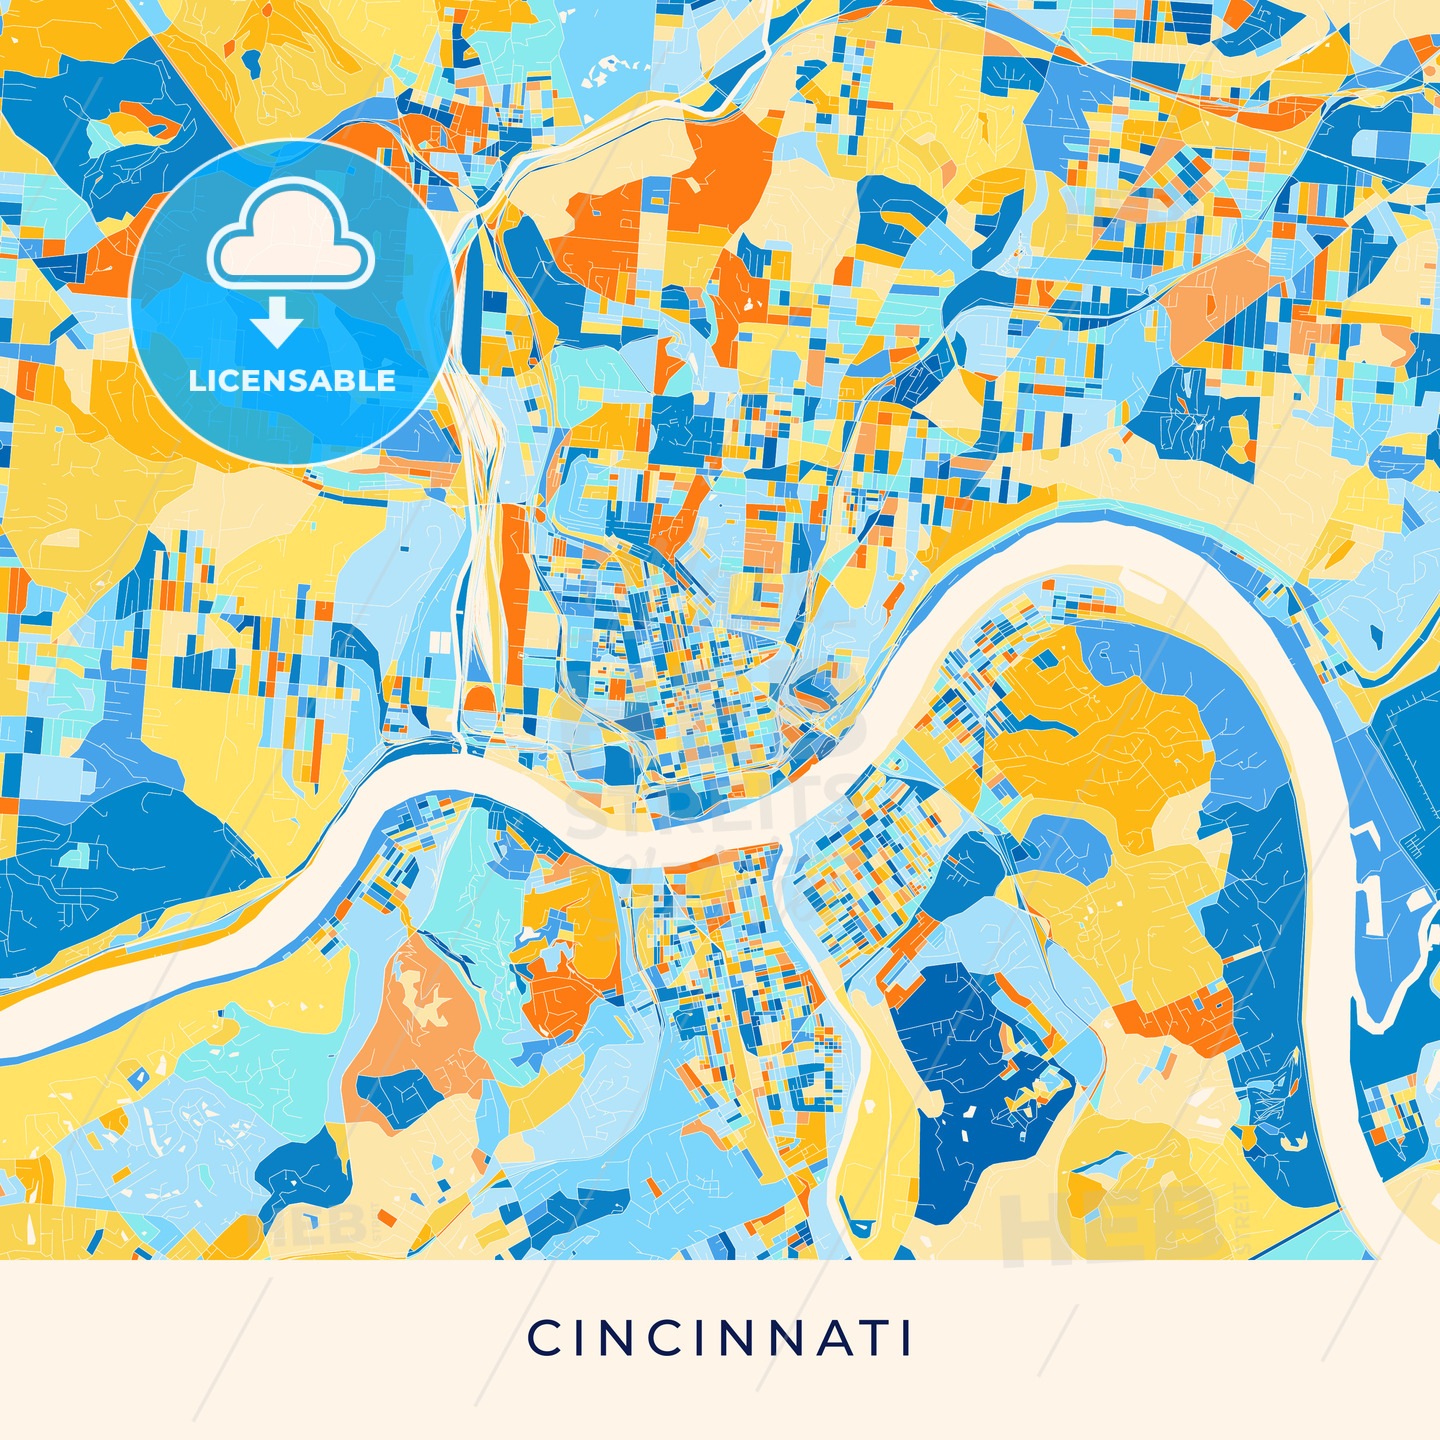 Cincinnati colorful map poster template on cincinnati oh suburbs, cincinnati oh on the map, cincinnati area road map, cincinnati airport map, cincinnati on us map, greater cincinnati map, dayton ohio united states map, dayton cincinnati map, cincinnati ohio, cincinnati outline map, luxembourg luxembourg map, cincinnati usa man, cincinnati casino map, evansville tx map, cincinnati county, cincinnati homicide map, cincinnati transportation, cincinnati bridges map, cincinnati zip codes list, cincinnati city streets,